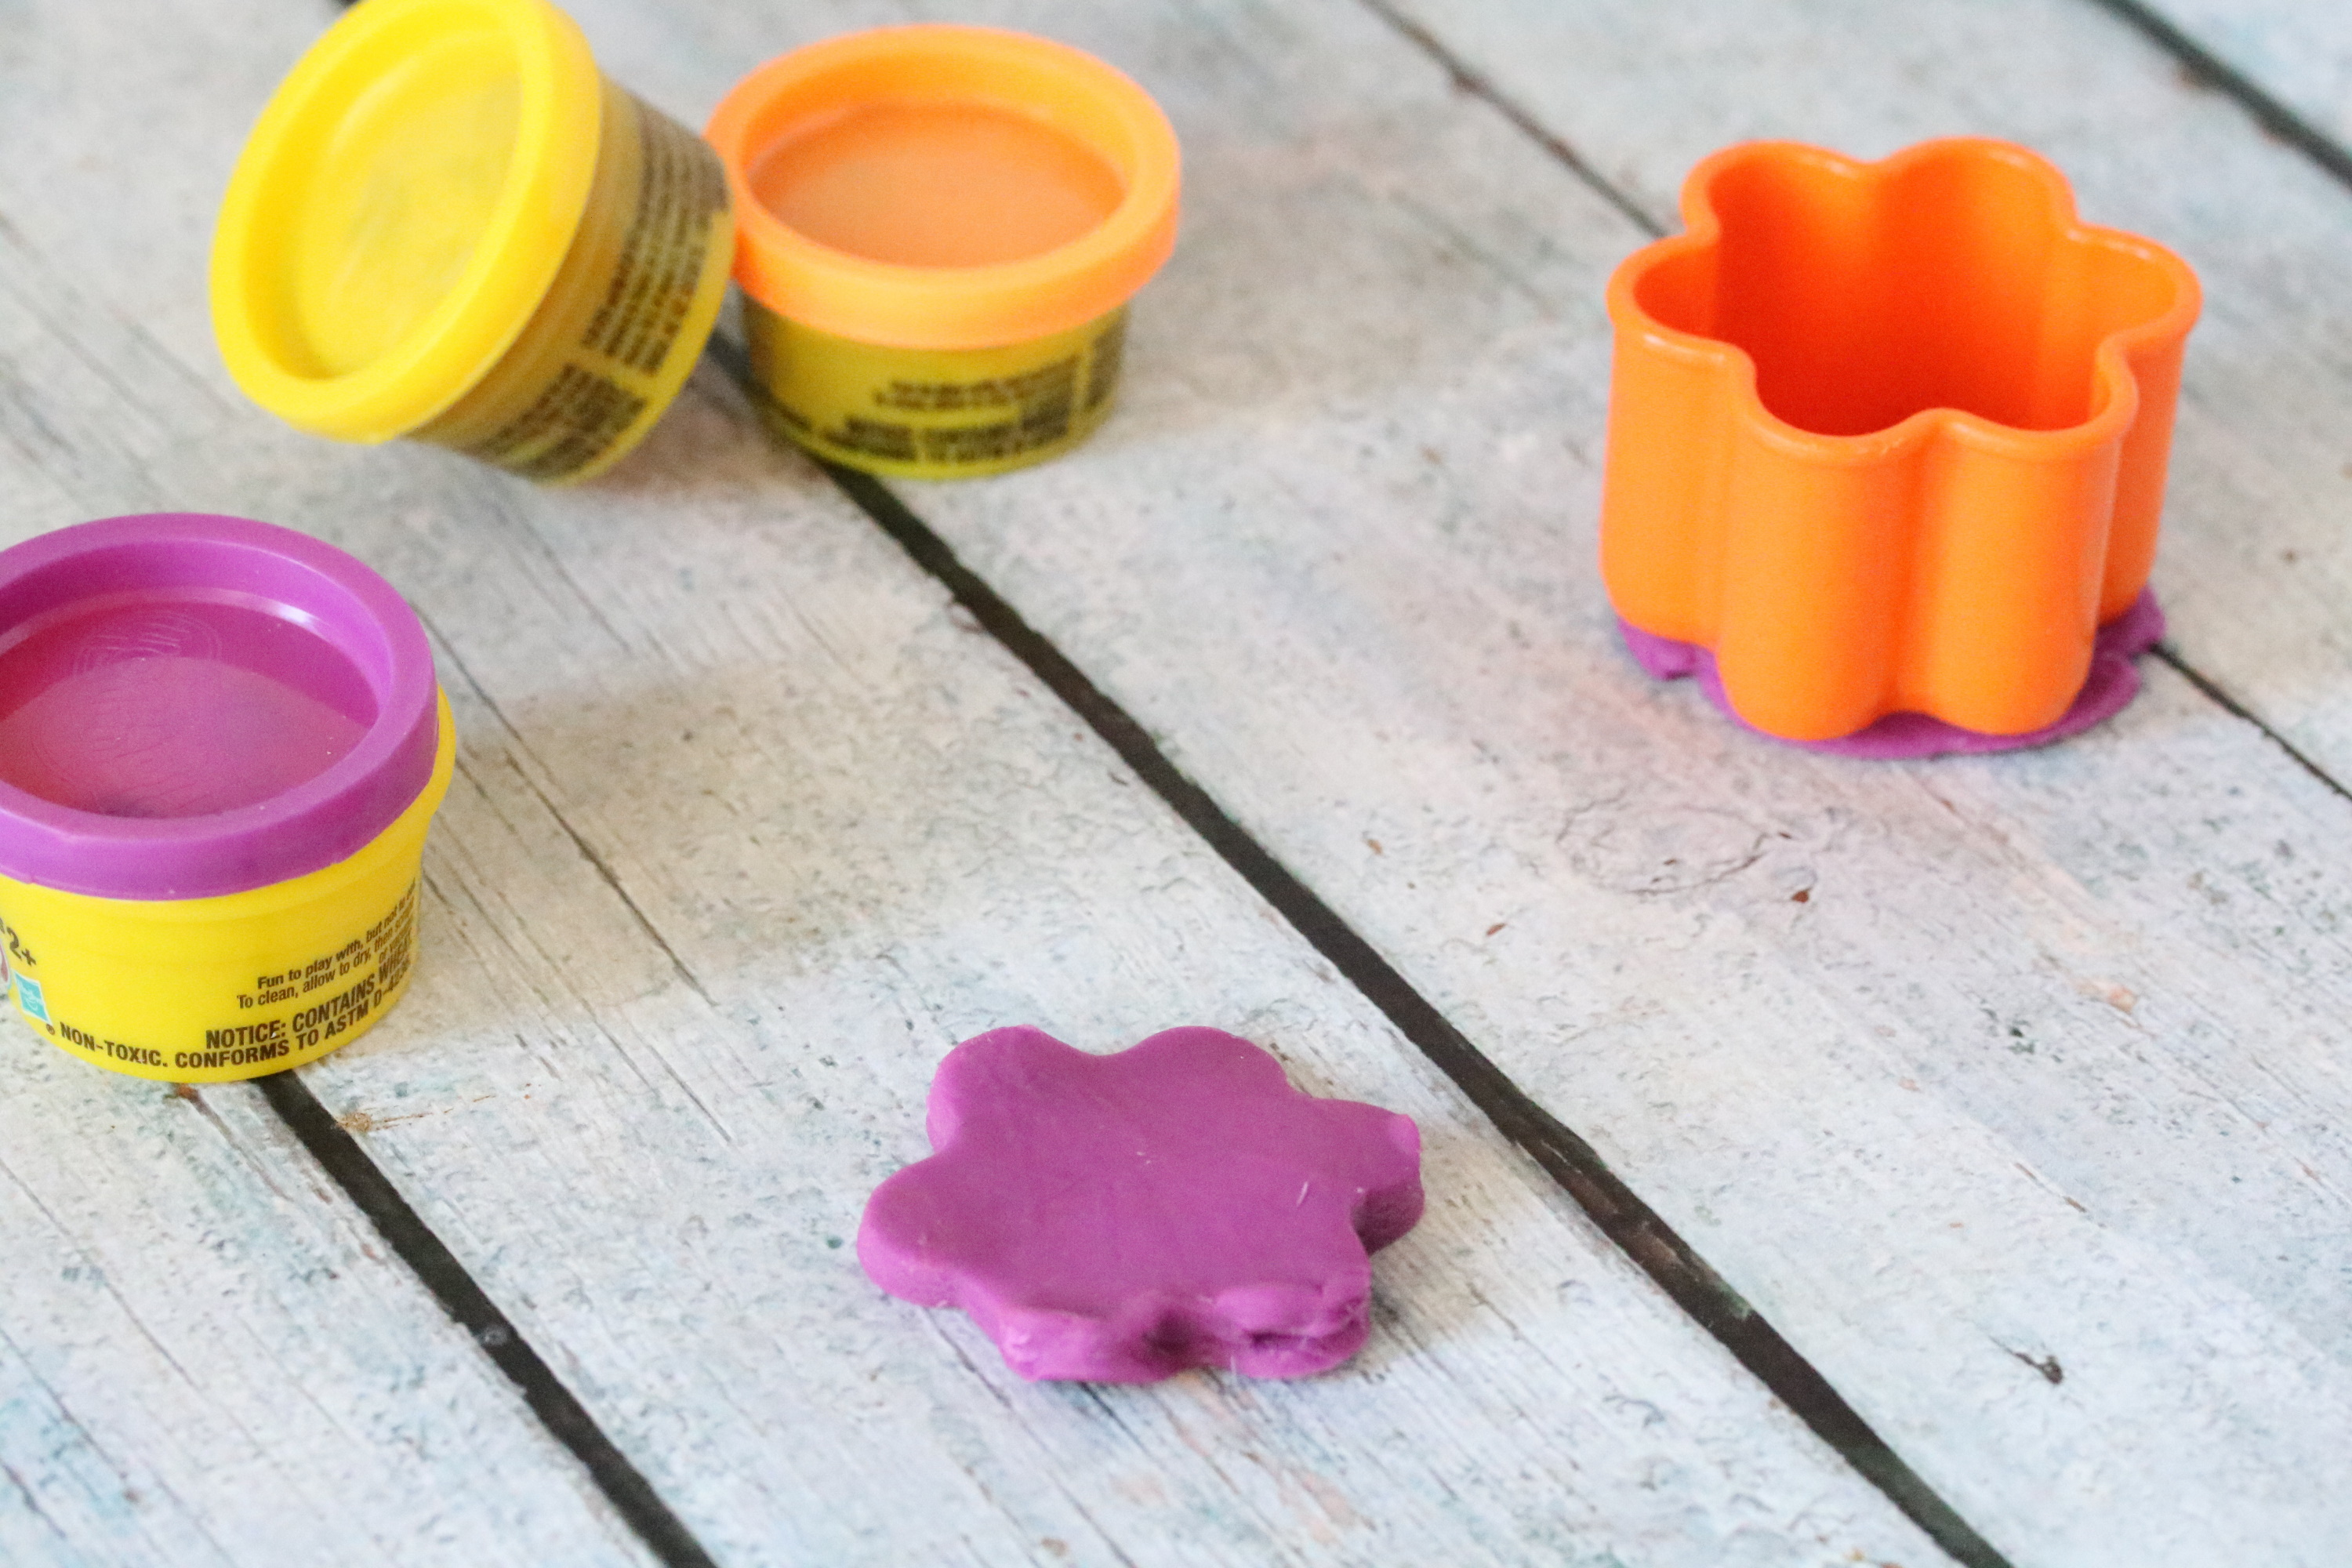 Three playdough containers wtith a purple playdough flower and flower mold.